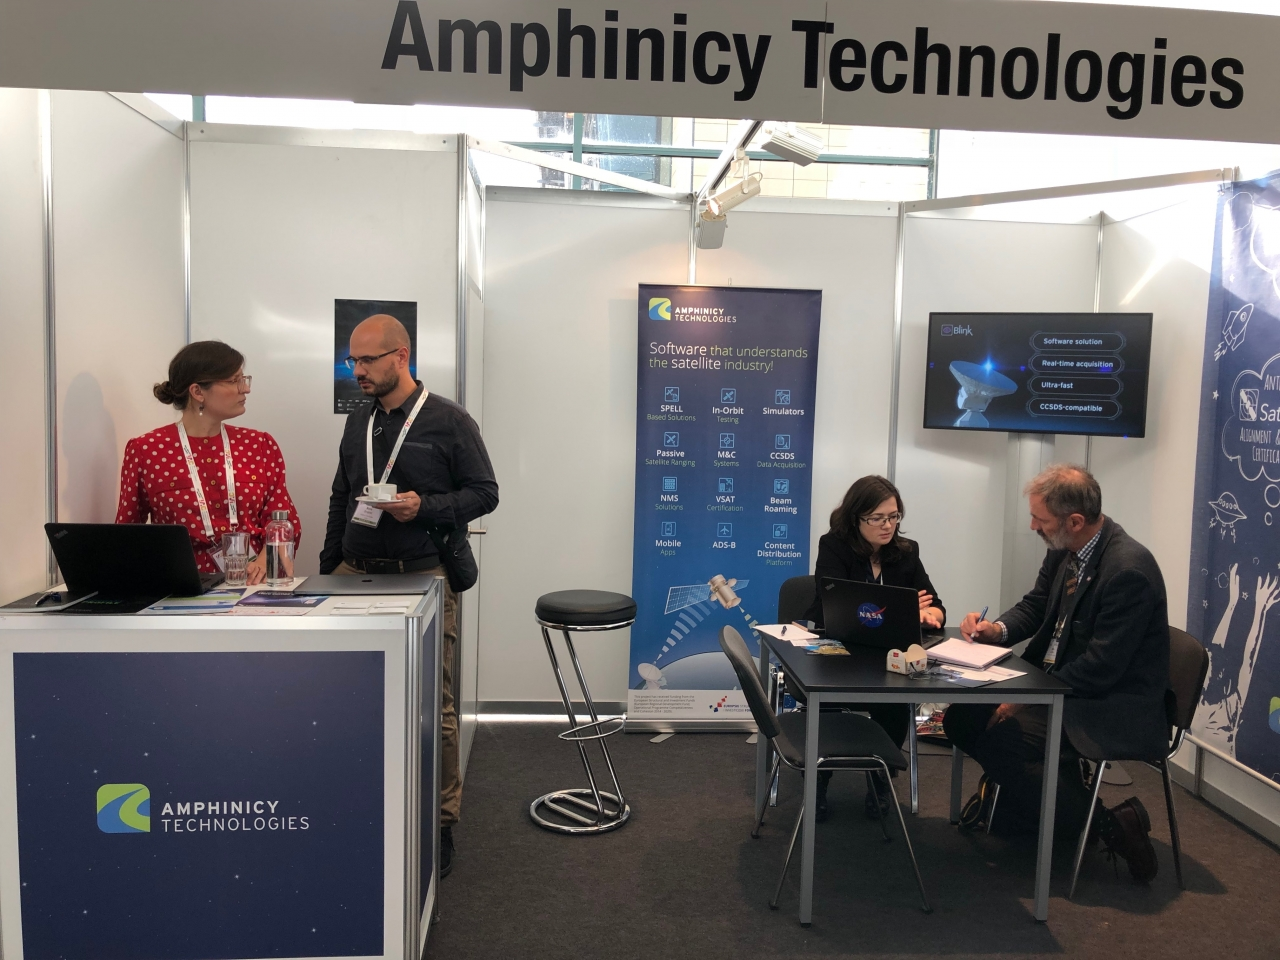 Amphinicy booth, source: private photo